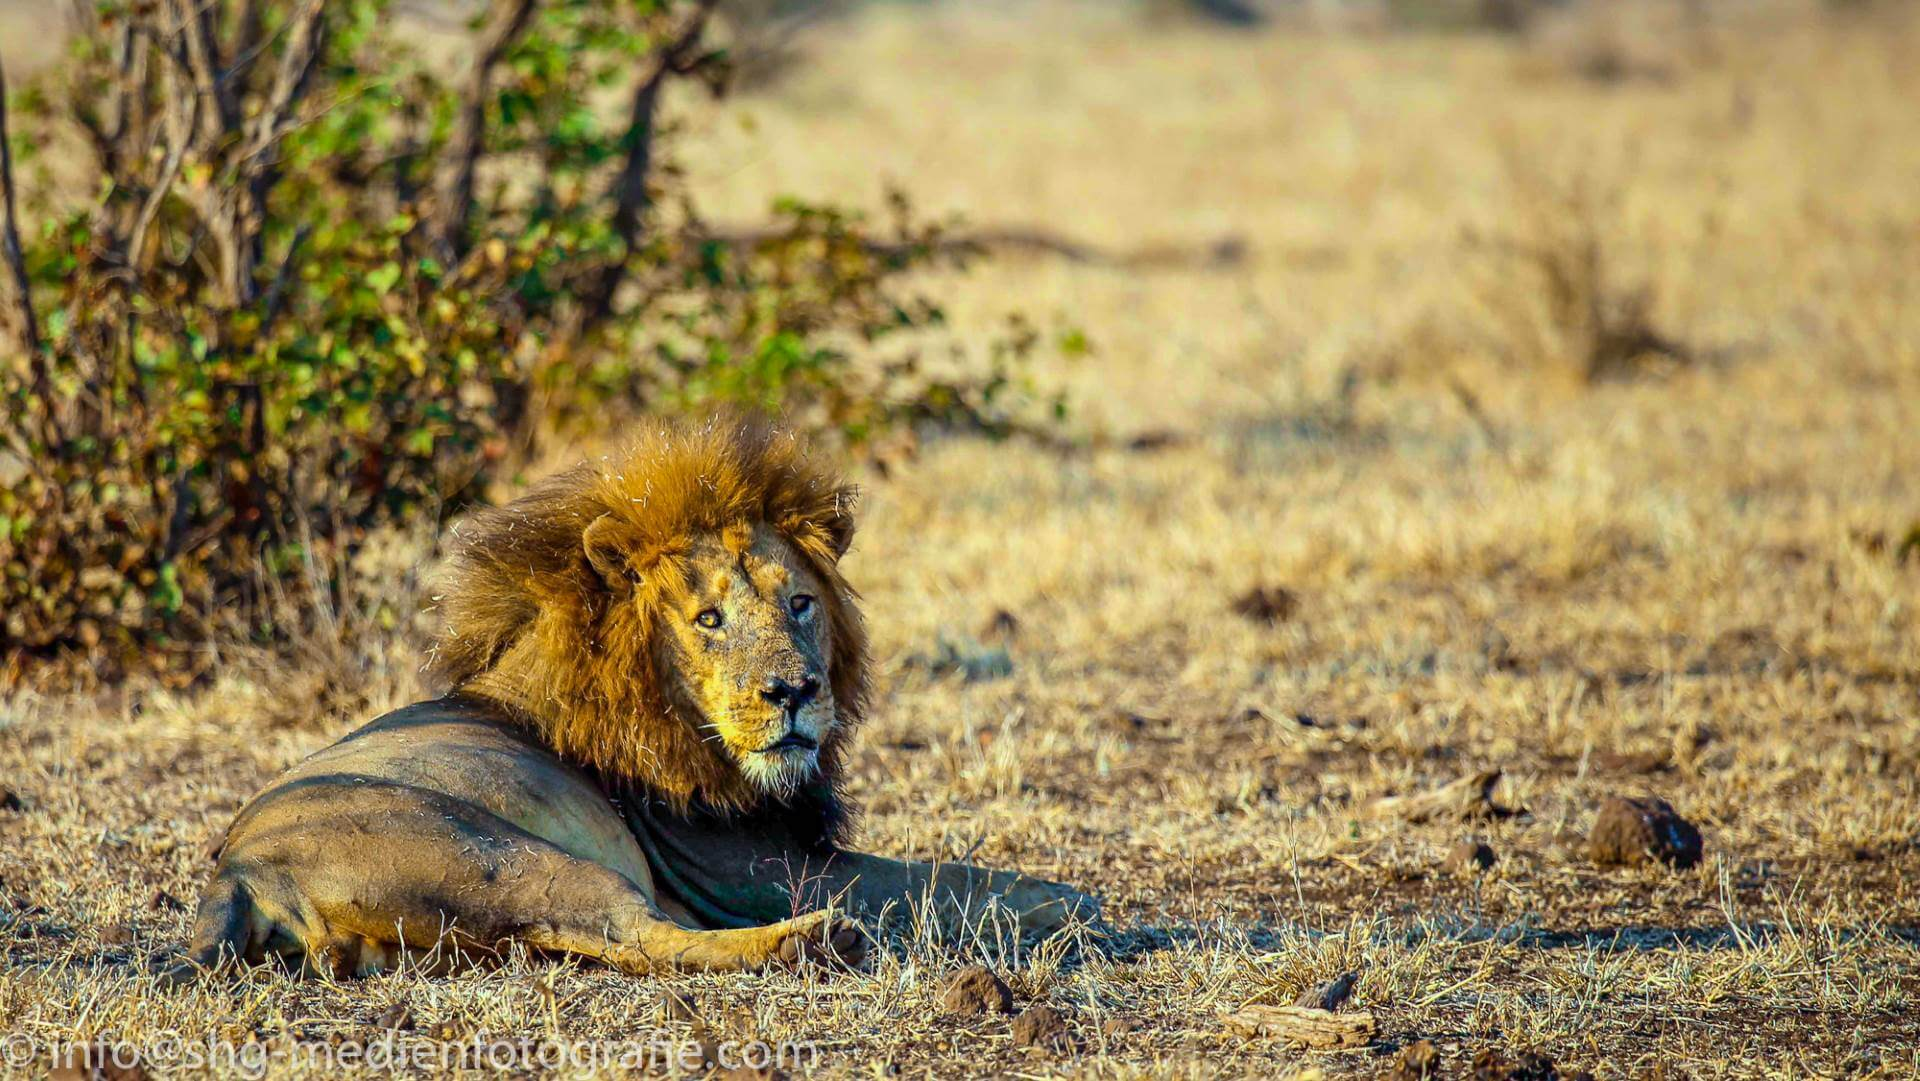 Lion up-close, Kruger National Park, South Africa